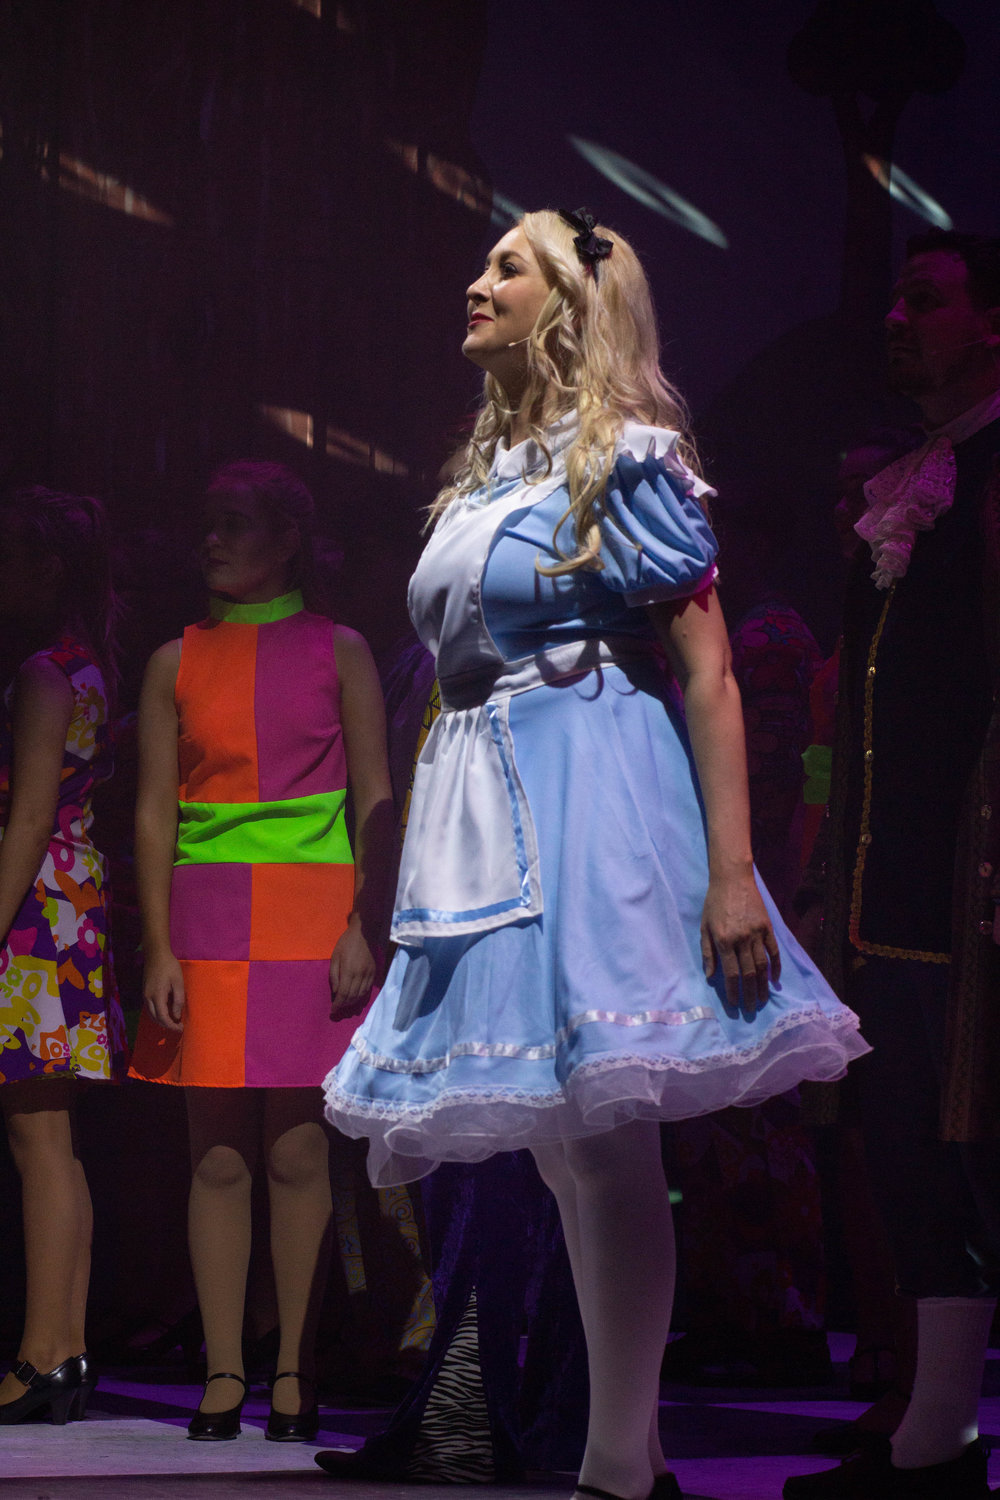 Alice_In_Wonderland_Panto-8531.jpg